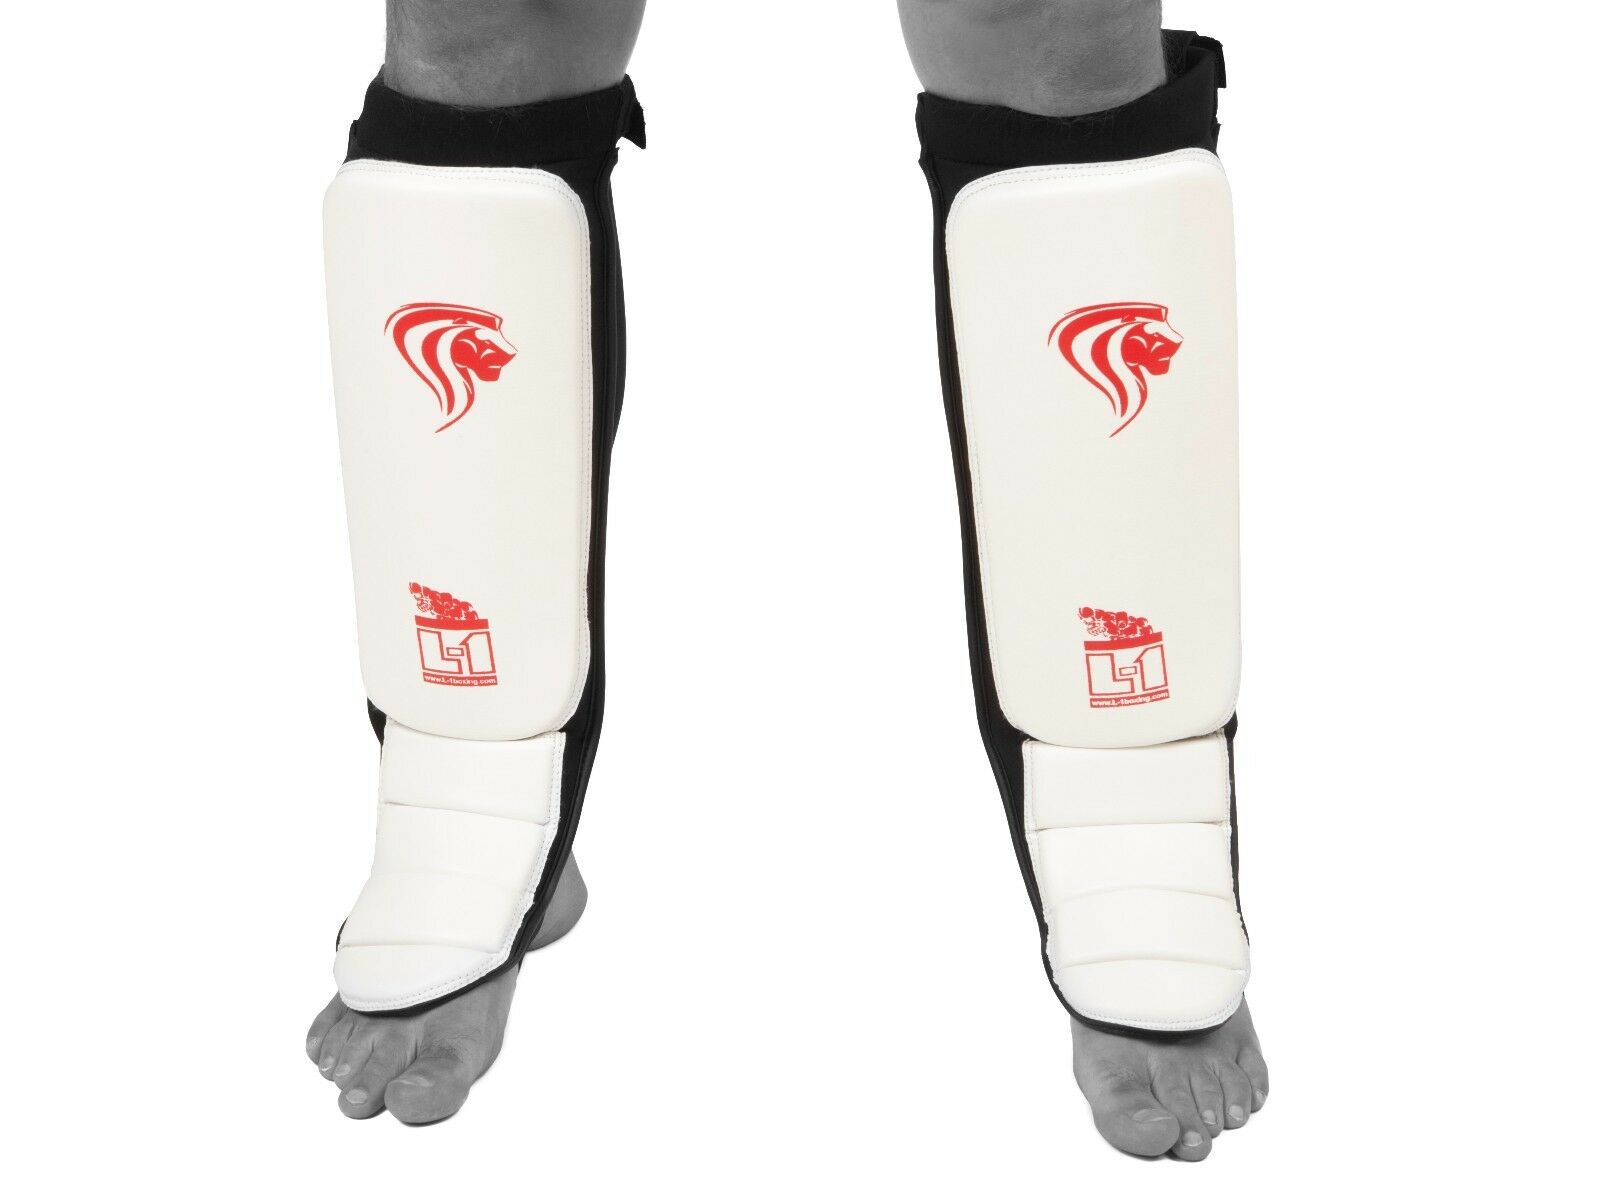 Boxing SPARRING Training SHIN GUARD Training  Fighting Lightweight shin S M  brand outlet